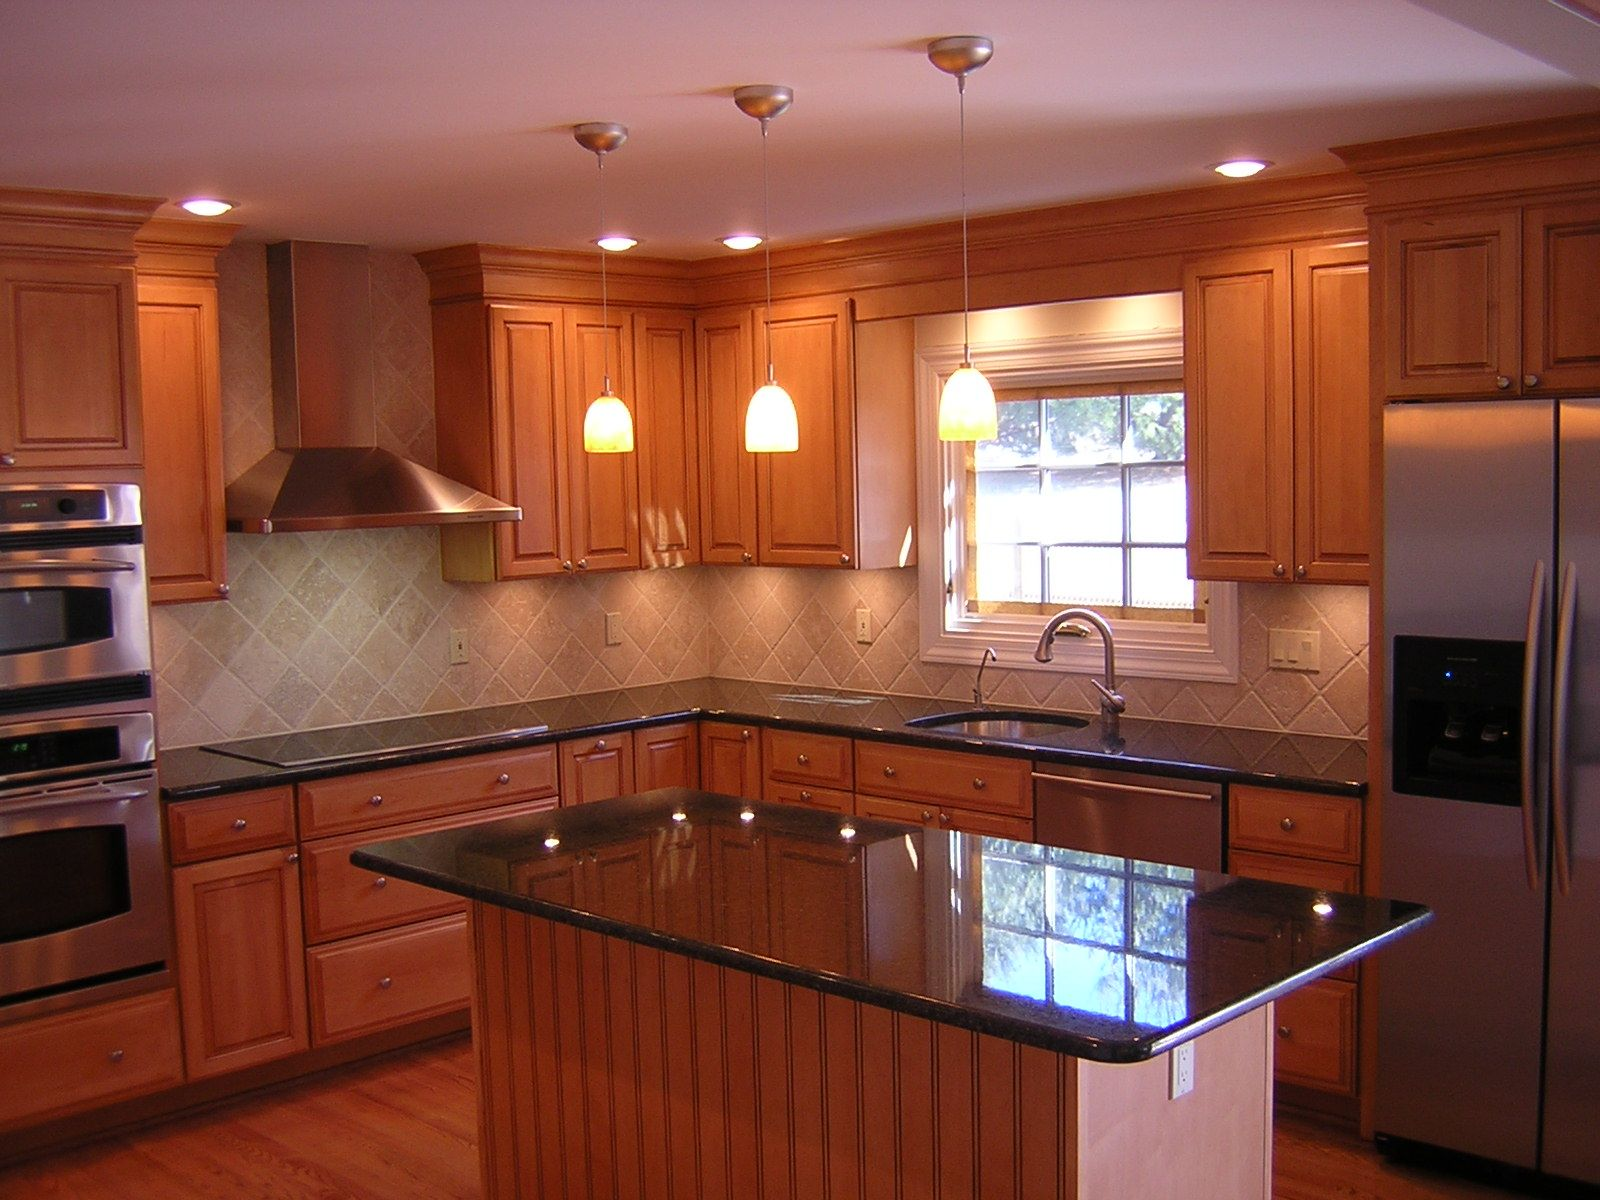 Home Decorations Small Kitchen Remodel On A